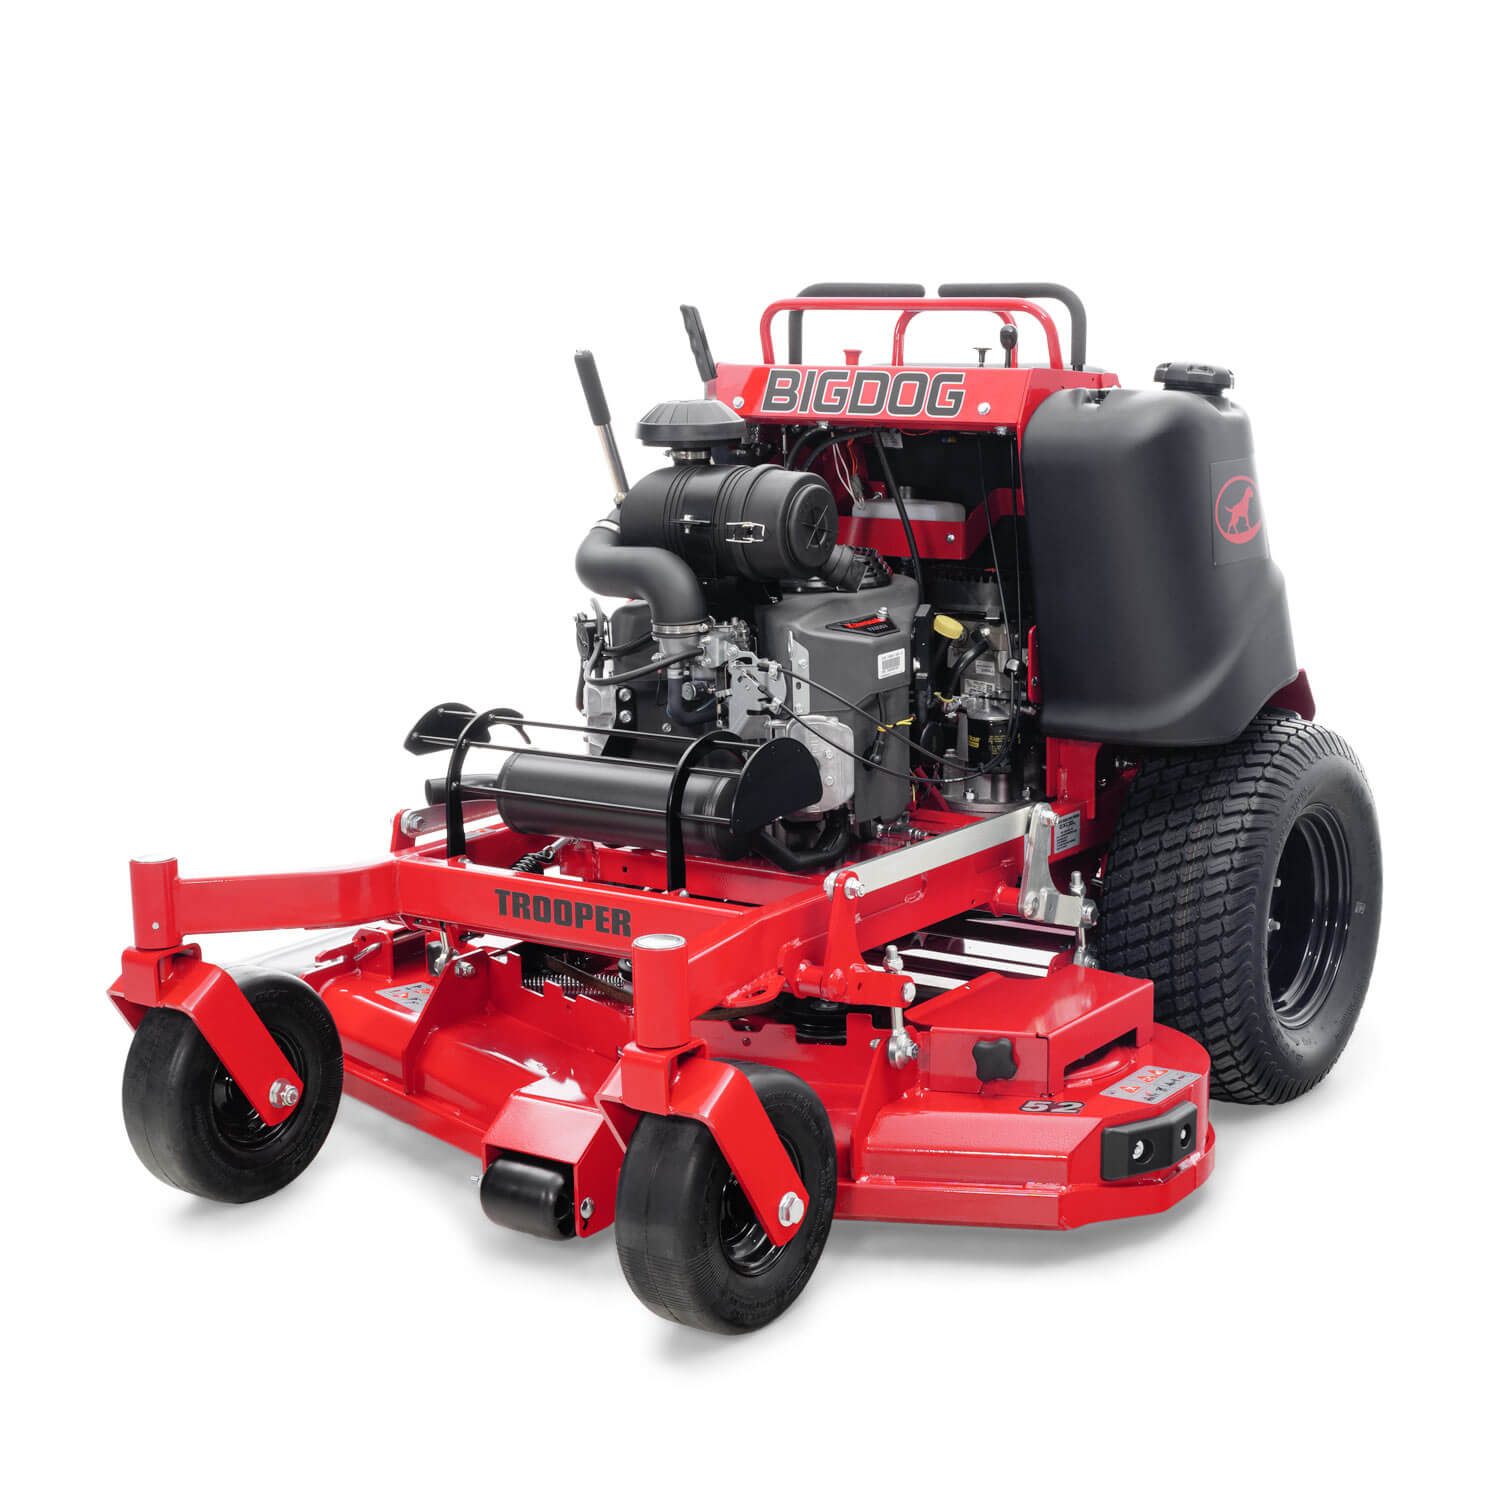 Image of the front three quarters of a red stand-on mower